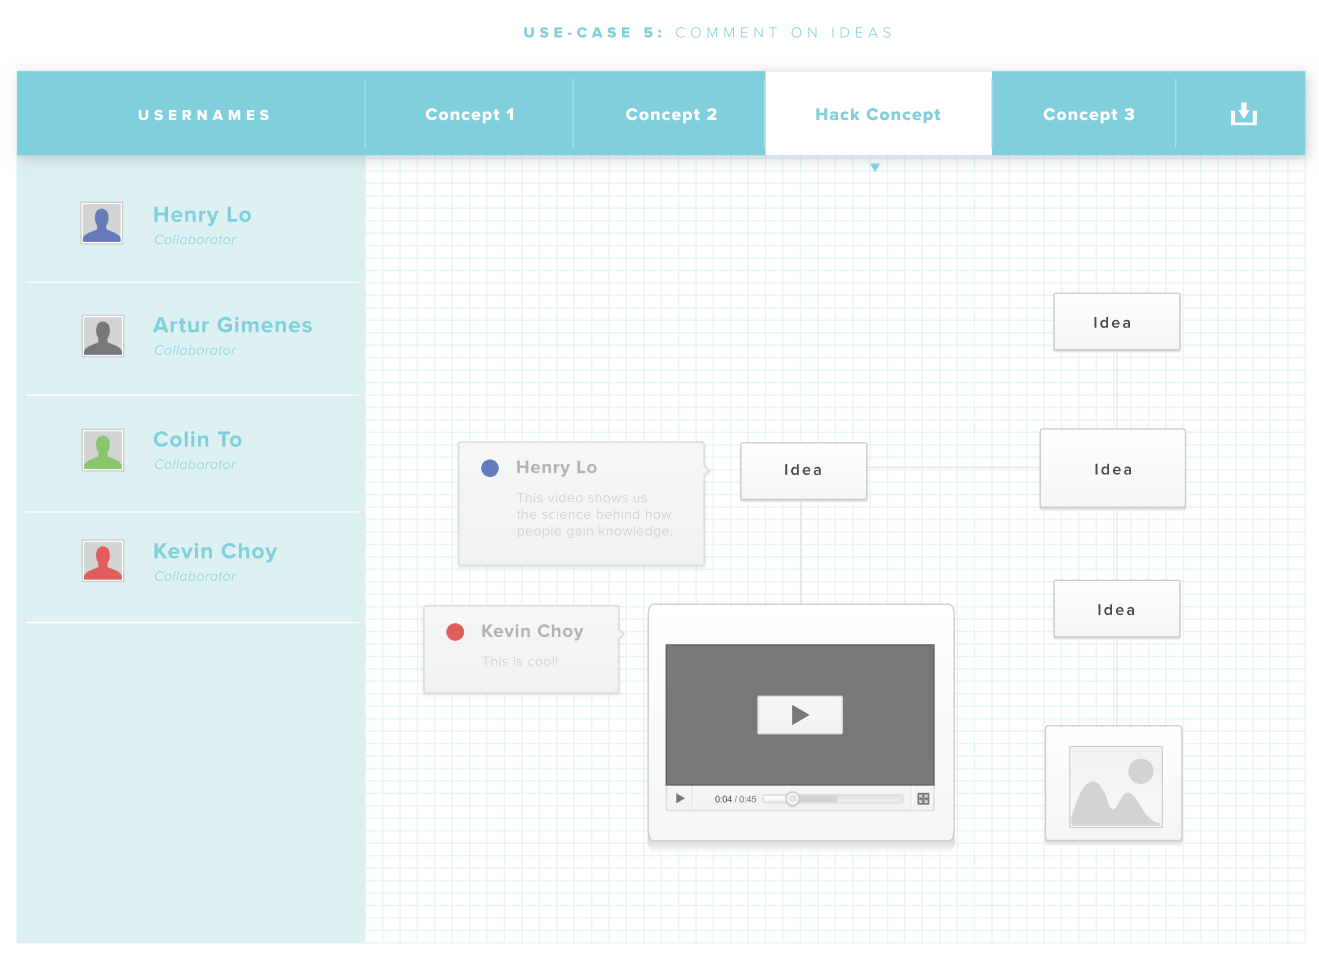 Screenshot of a mockup of use case 5: comment on ideas